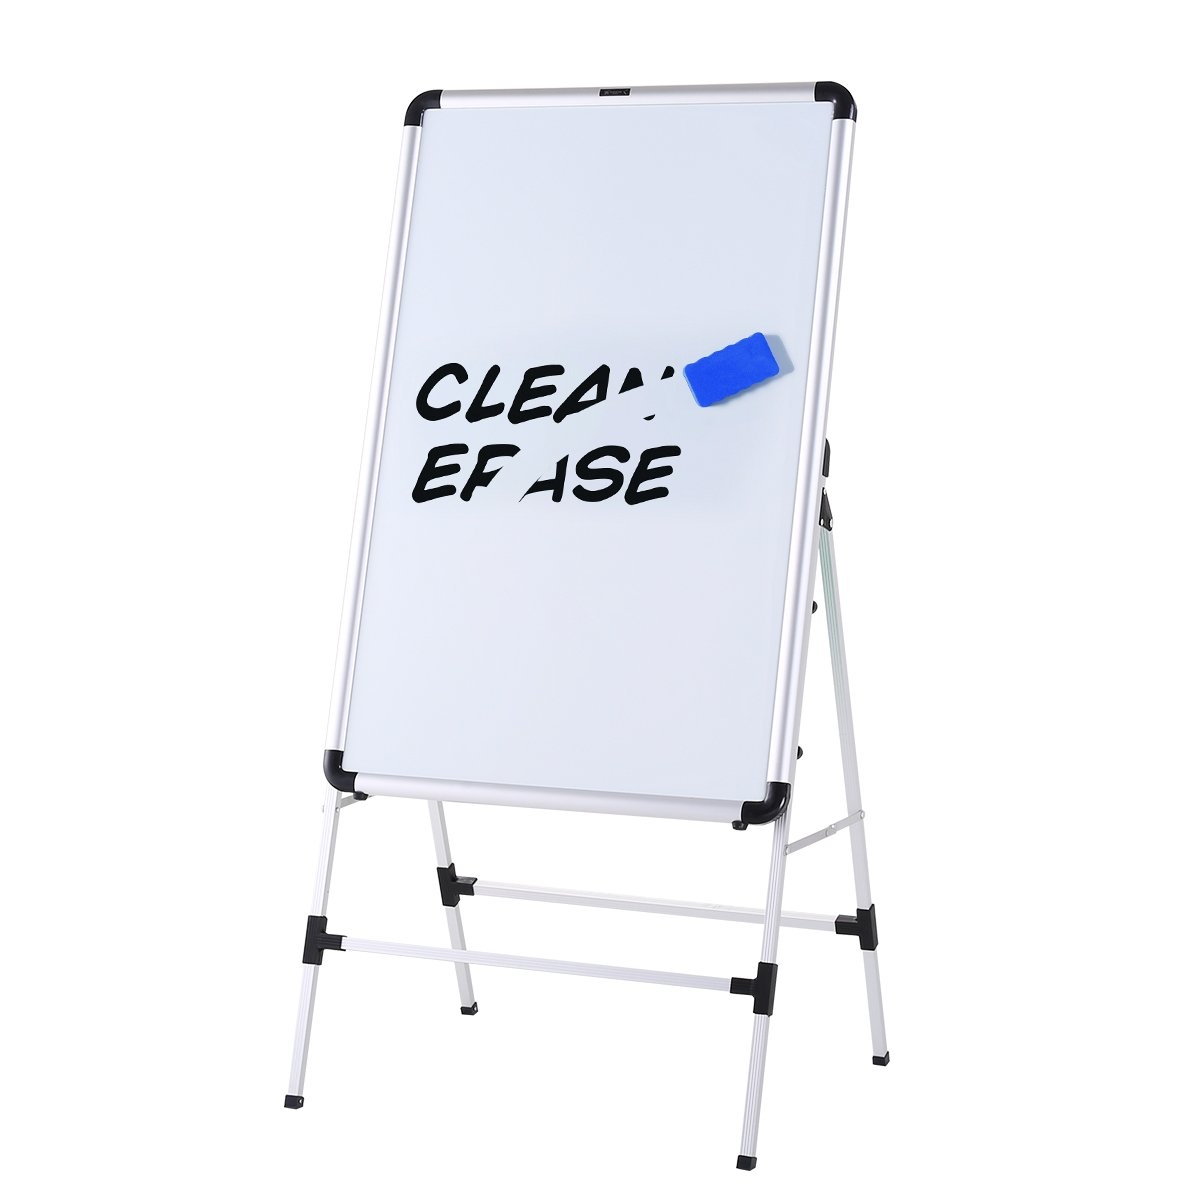 ZHIDIAN Magnetic whiteboard 36x24 Inch Dry Erase Boards with Stand Bulletin Aluminum frame Folding and convenient storage ZHIIDIAN FT605 bulletin board